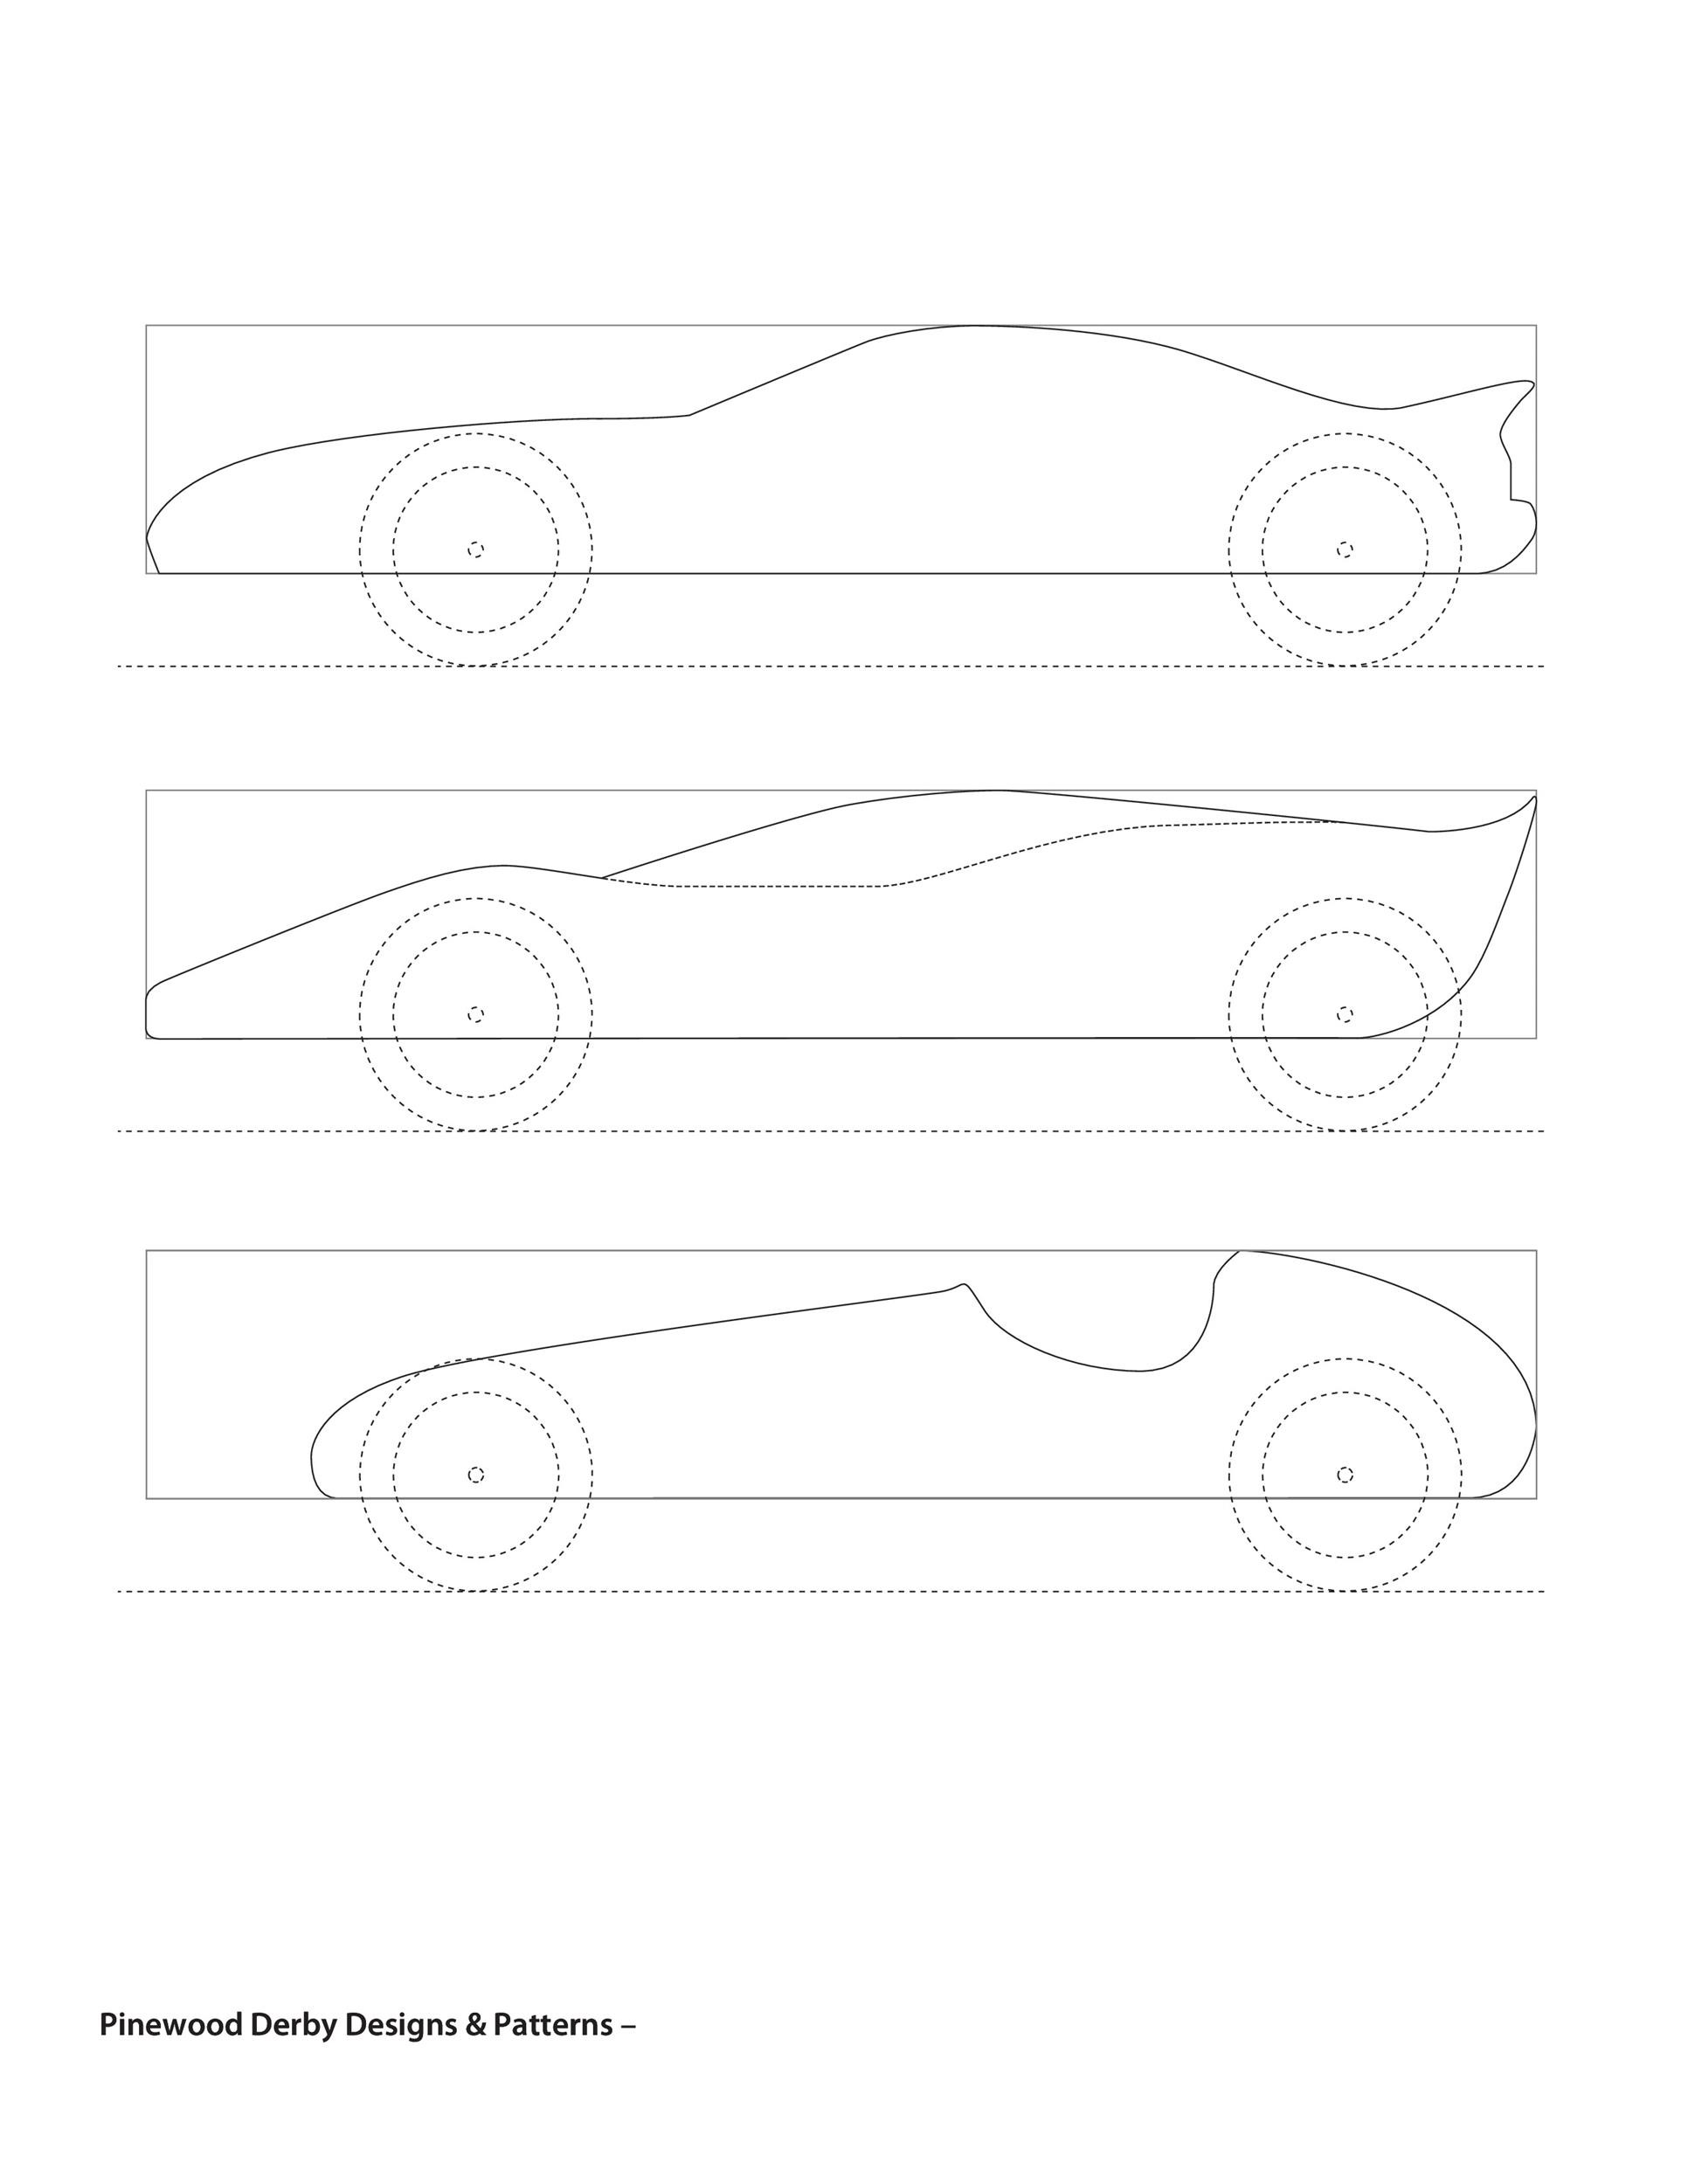 graphic about Free Pinewood Derby Templates Printable known as 39 Wonderful Pinewood Derby Auto Types Templates ᐅ